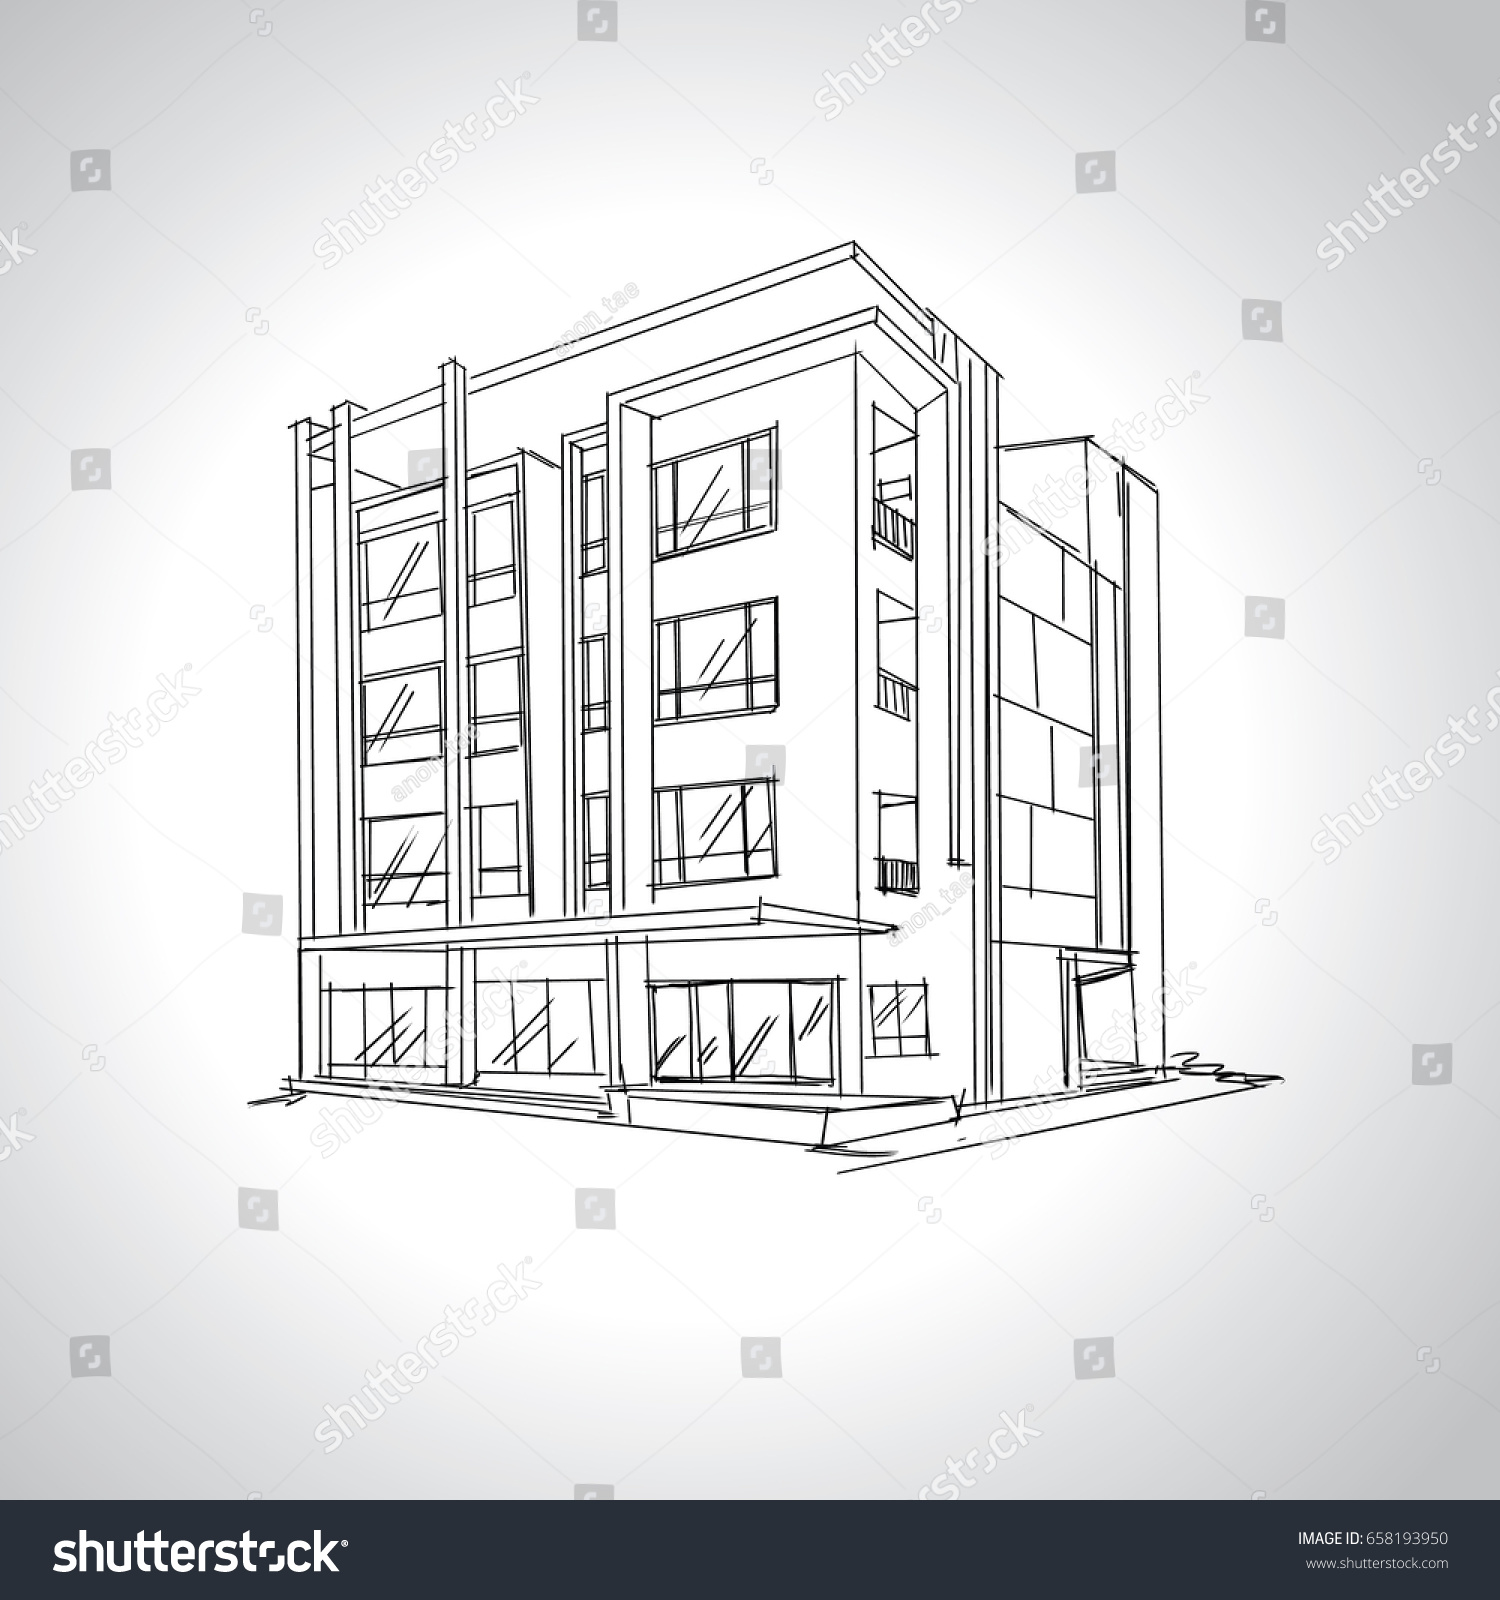 Sketch of modern house architecture drawing free hand